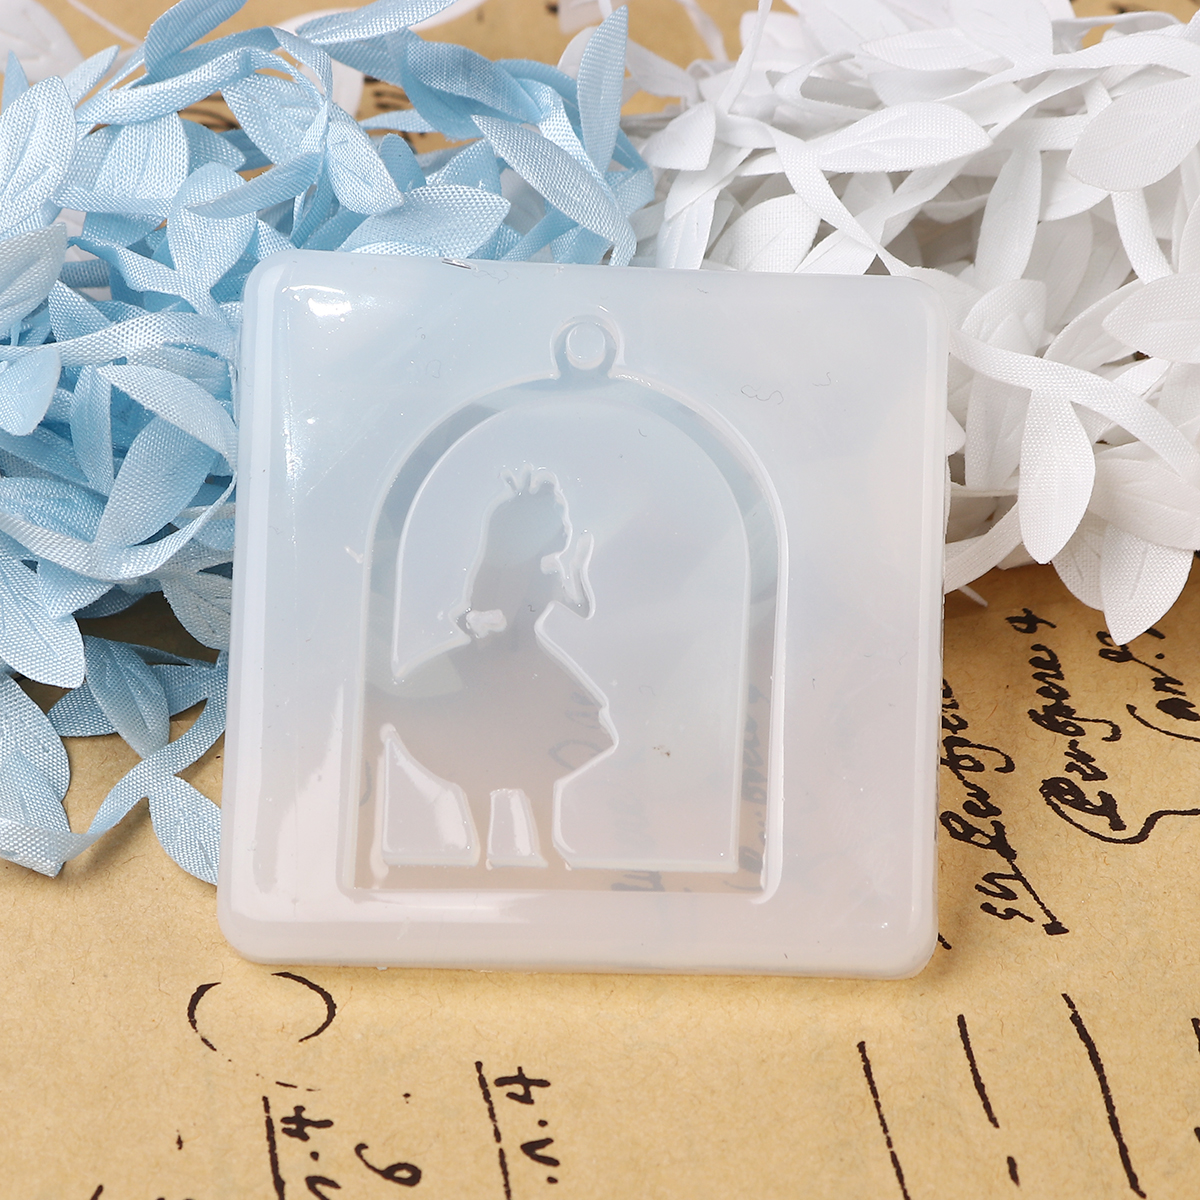 Silicone Resin Mold For Jewelry Making Birdcage White Girl 58mm(2 2/8